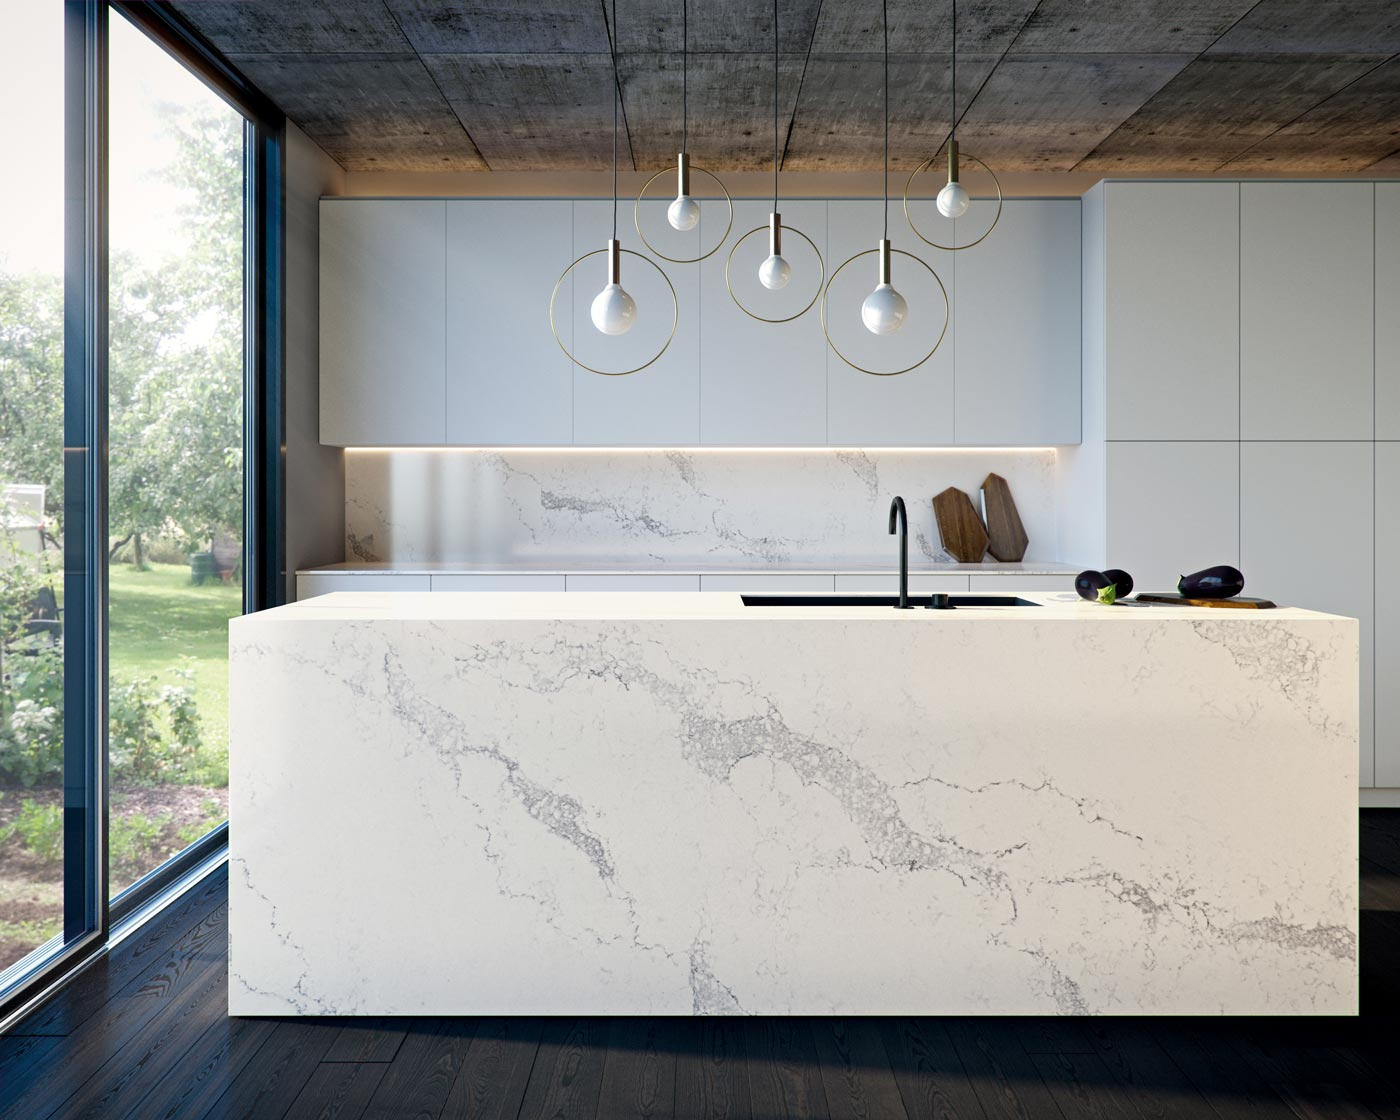 Kitchen Laminate Benchtops Kitchen Benchtops Comparison Premier Kitchens Australia